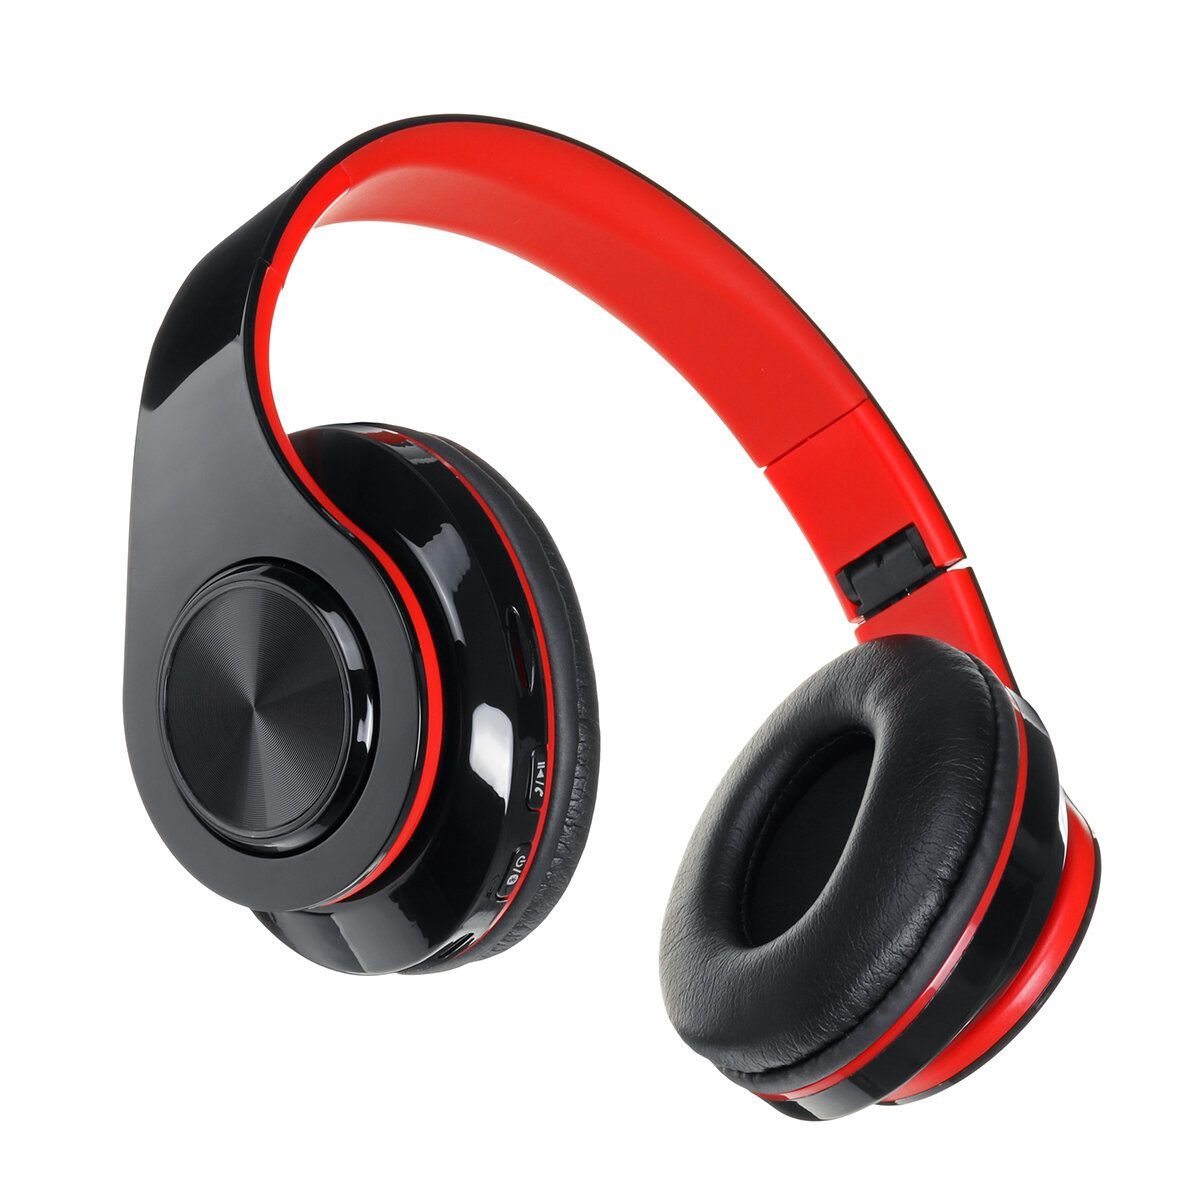 FYS US$17.69 Luminous LED bluetooth 5.0 Headset Foldable Long Capacity Noise Reduction Call Headphone Support FM TF Card